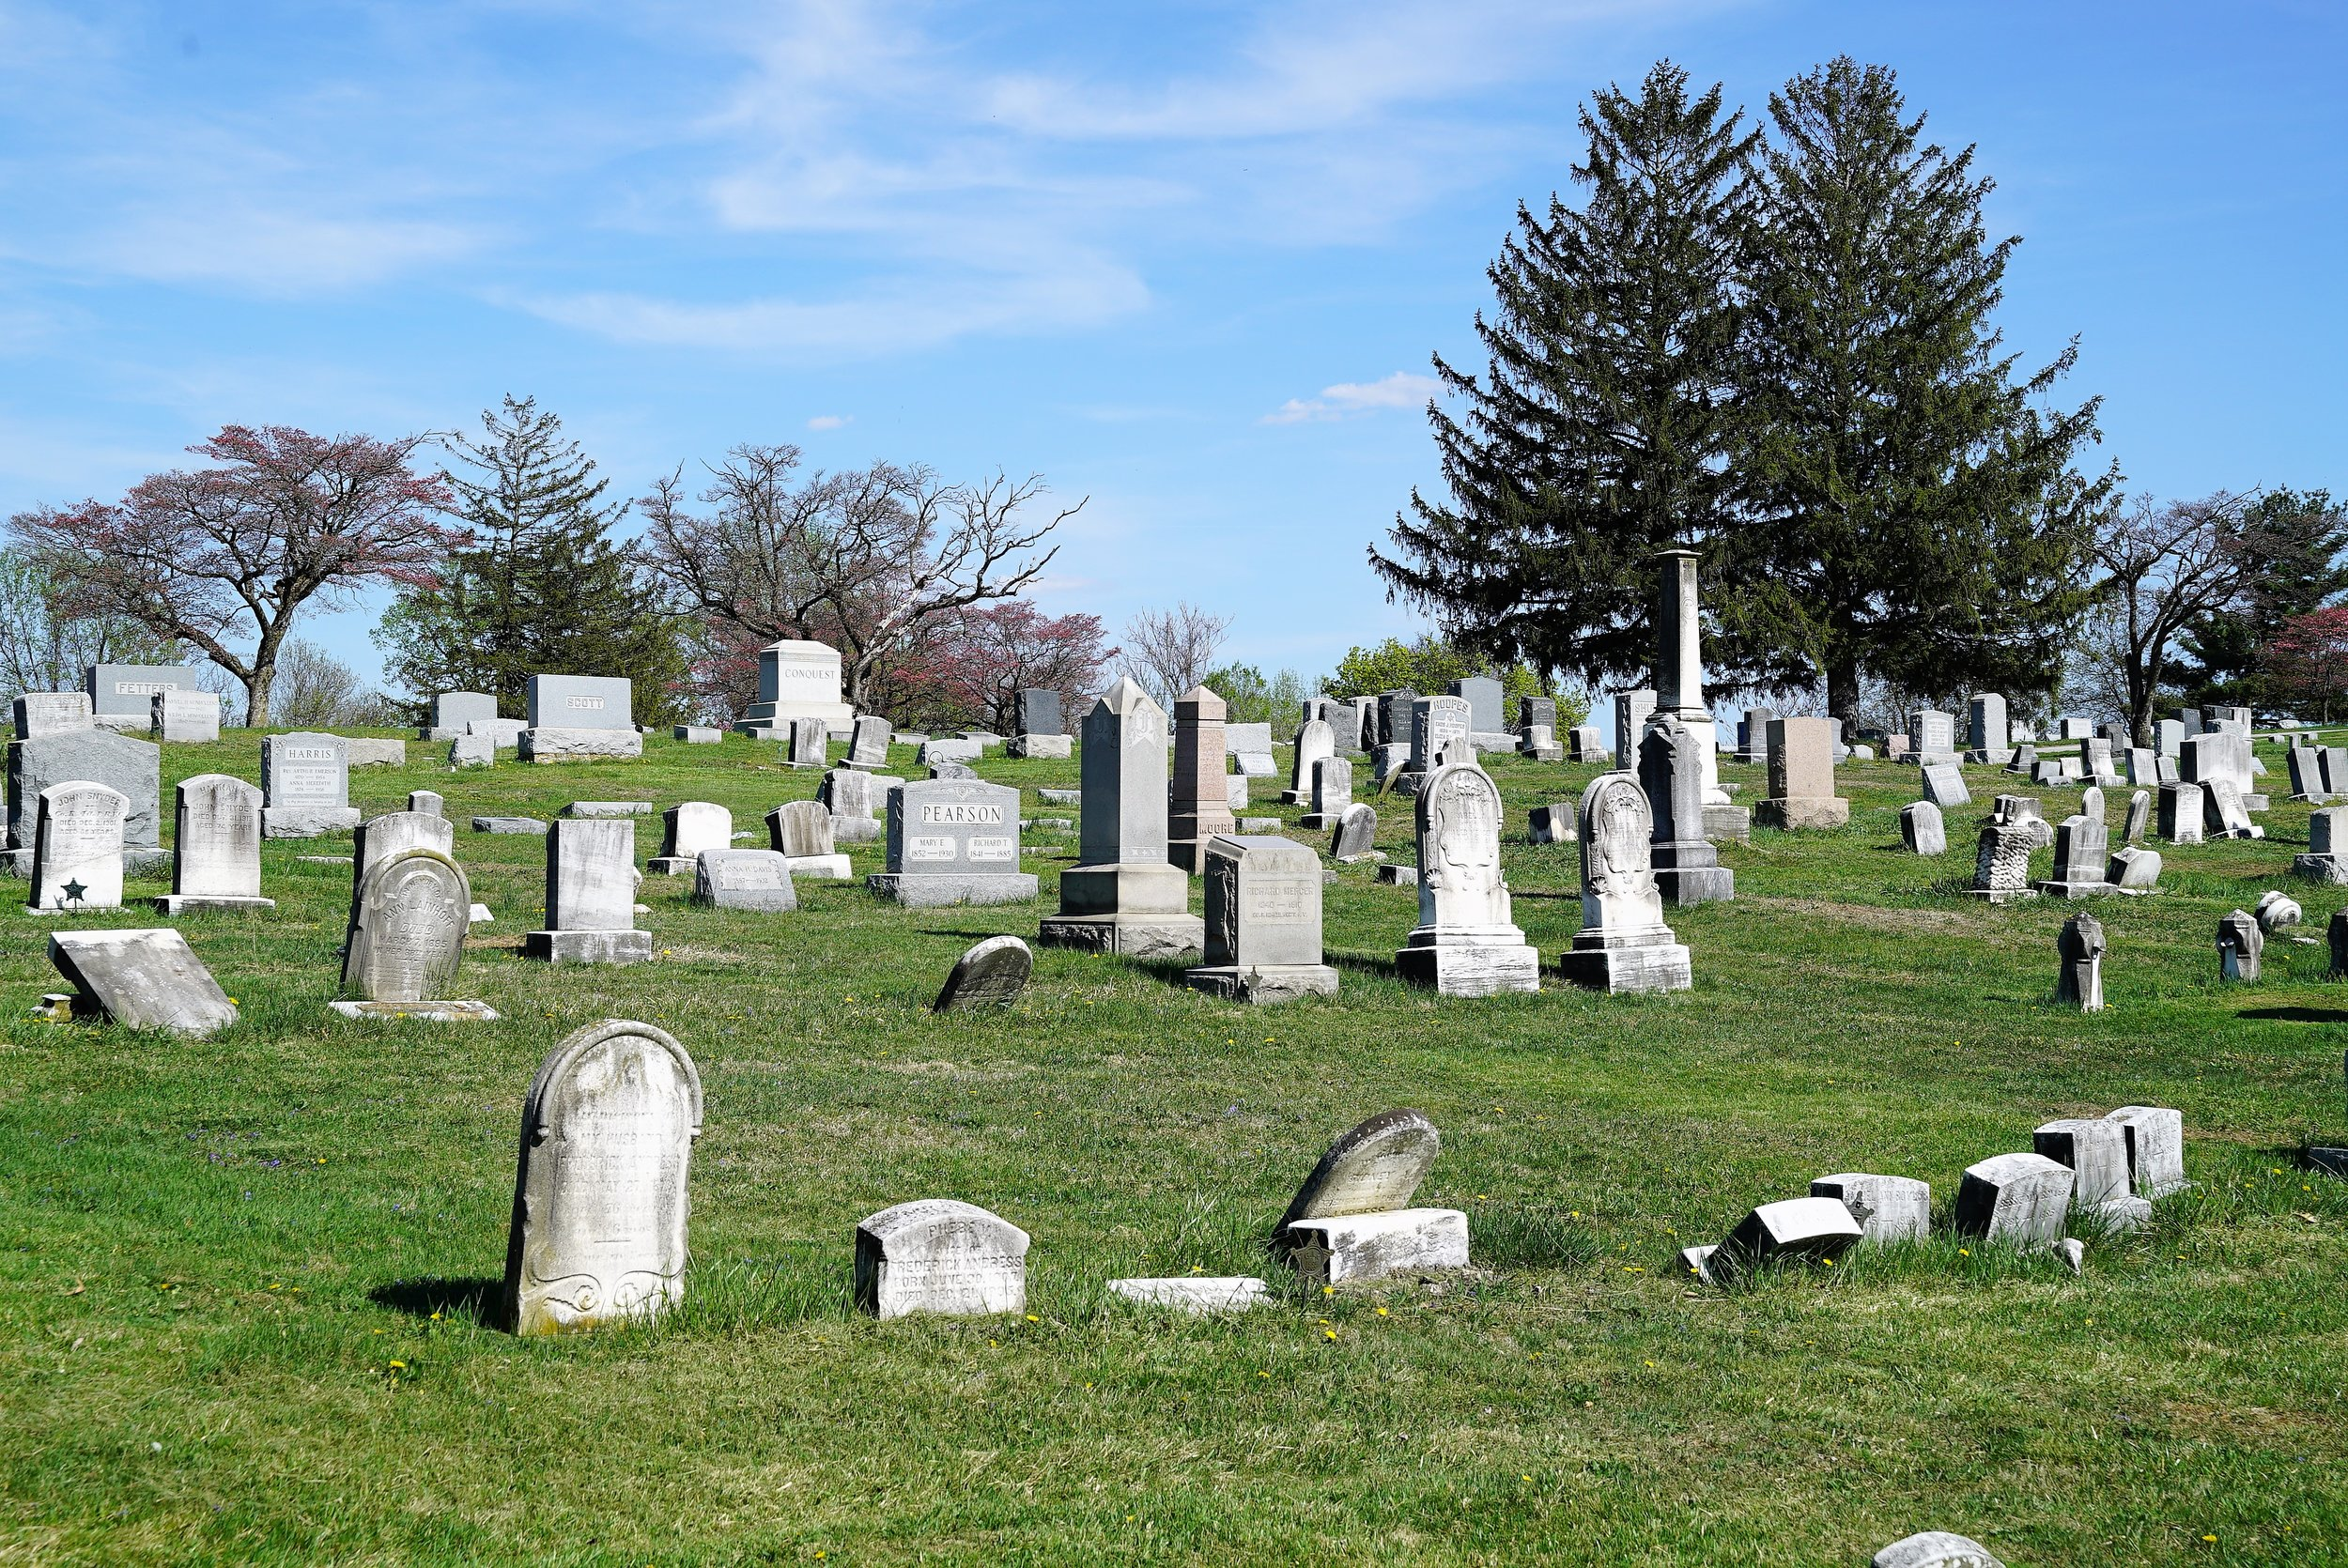 The view on a sunny April day at Grove United Methodist Church Cemetery. West Chester, PA.